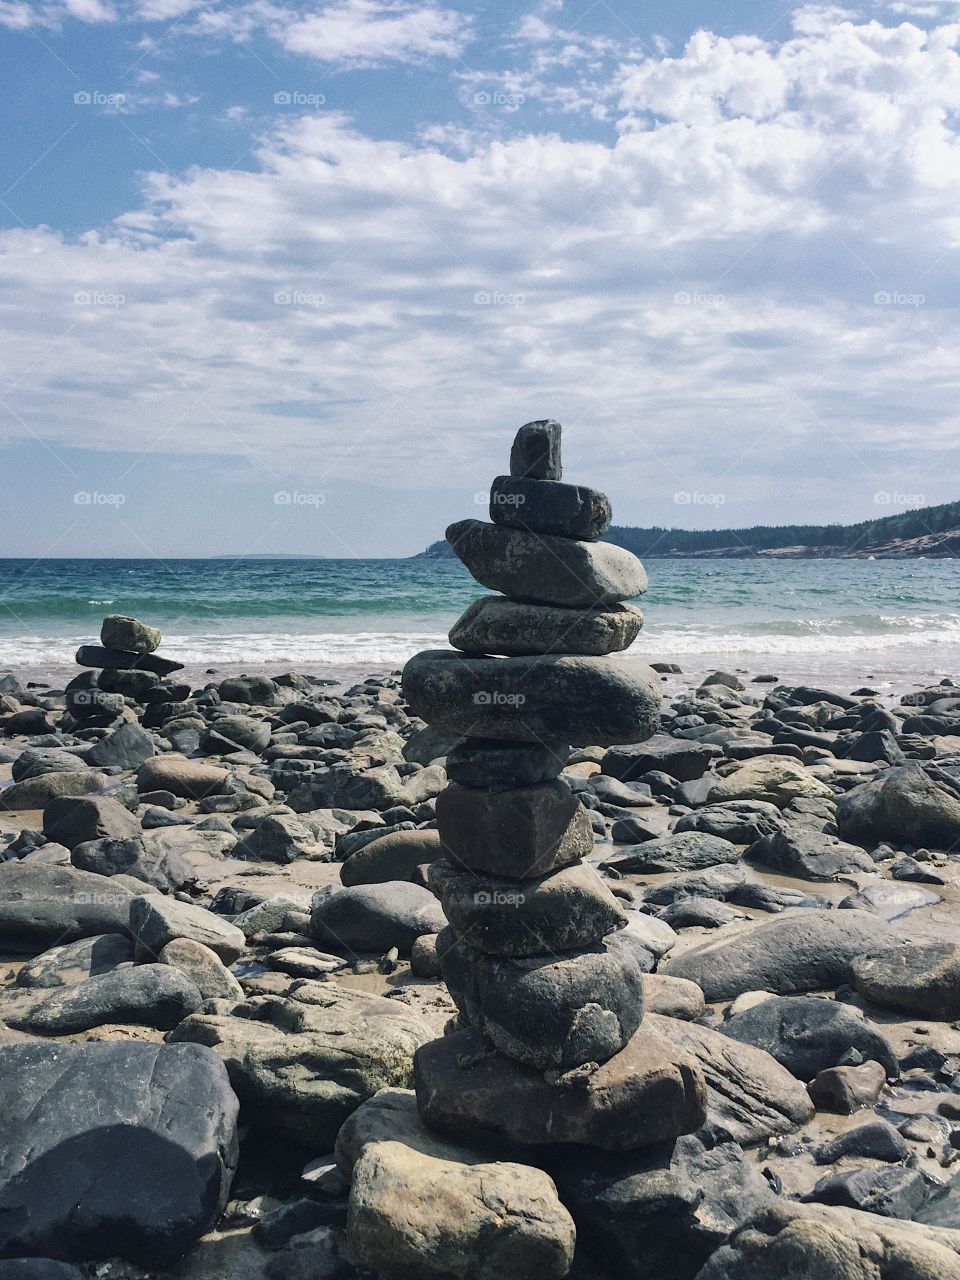 Last summer i went to sand beach in Bar Harbor, Maine, USA. And I saw people did the rocks like that. It looks so cool.  I like it so much. Also, the water is clean and fresh.